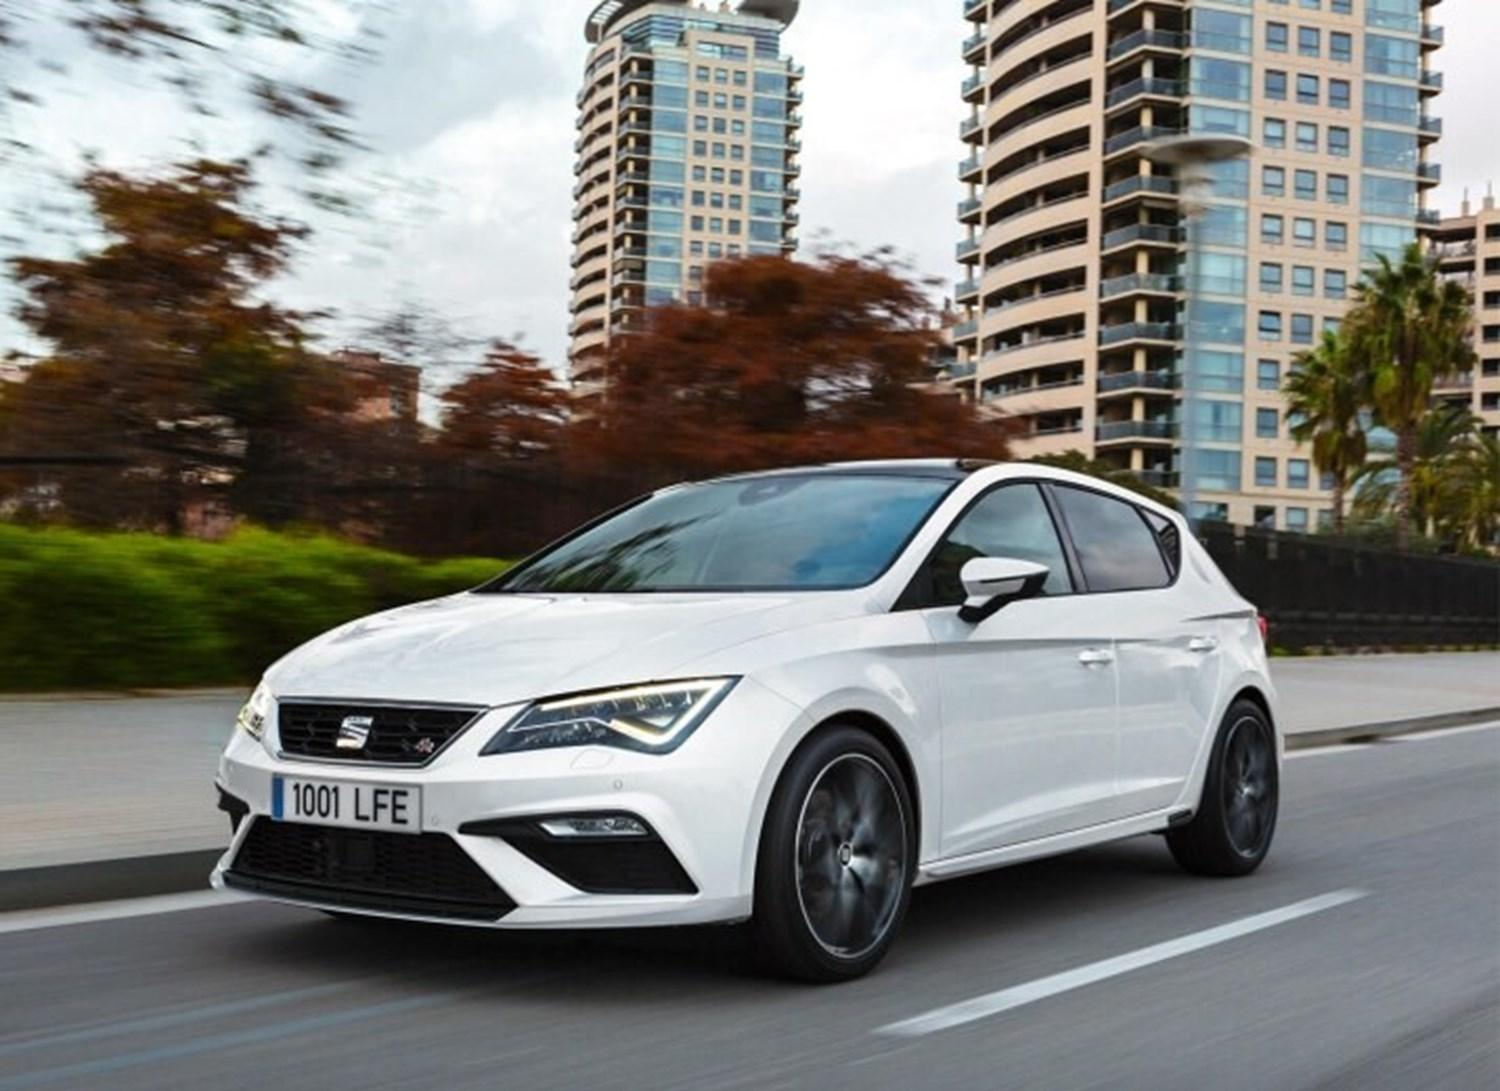 White SEAT Ibiza FR with flats in the background